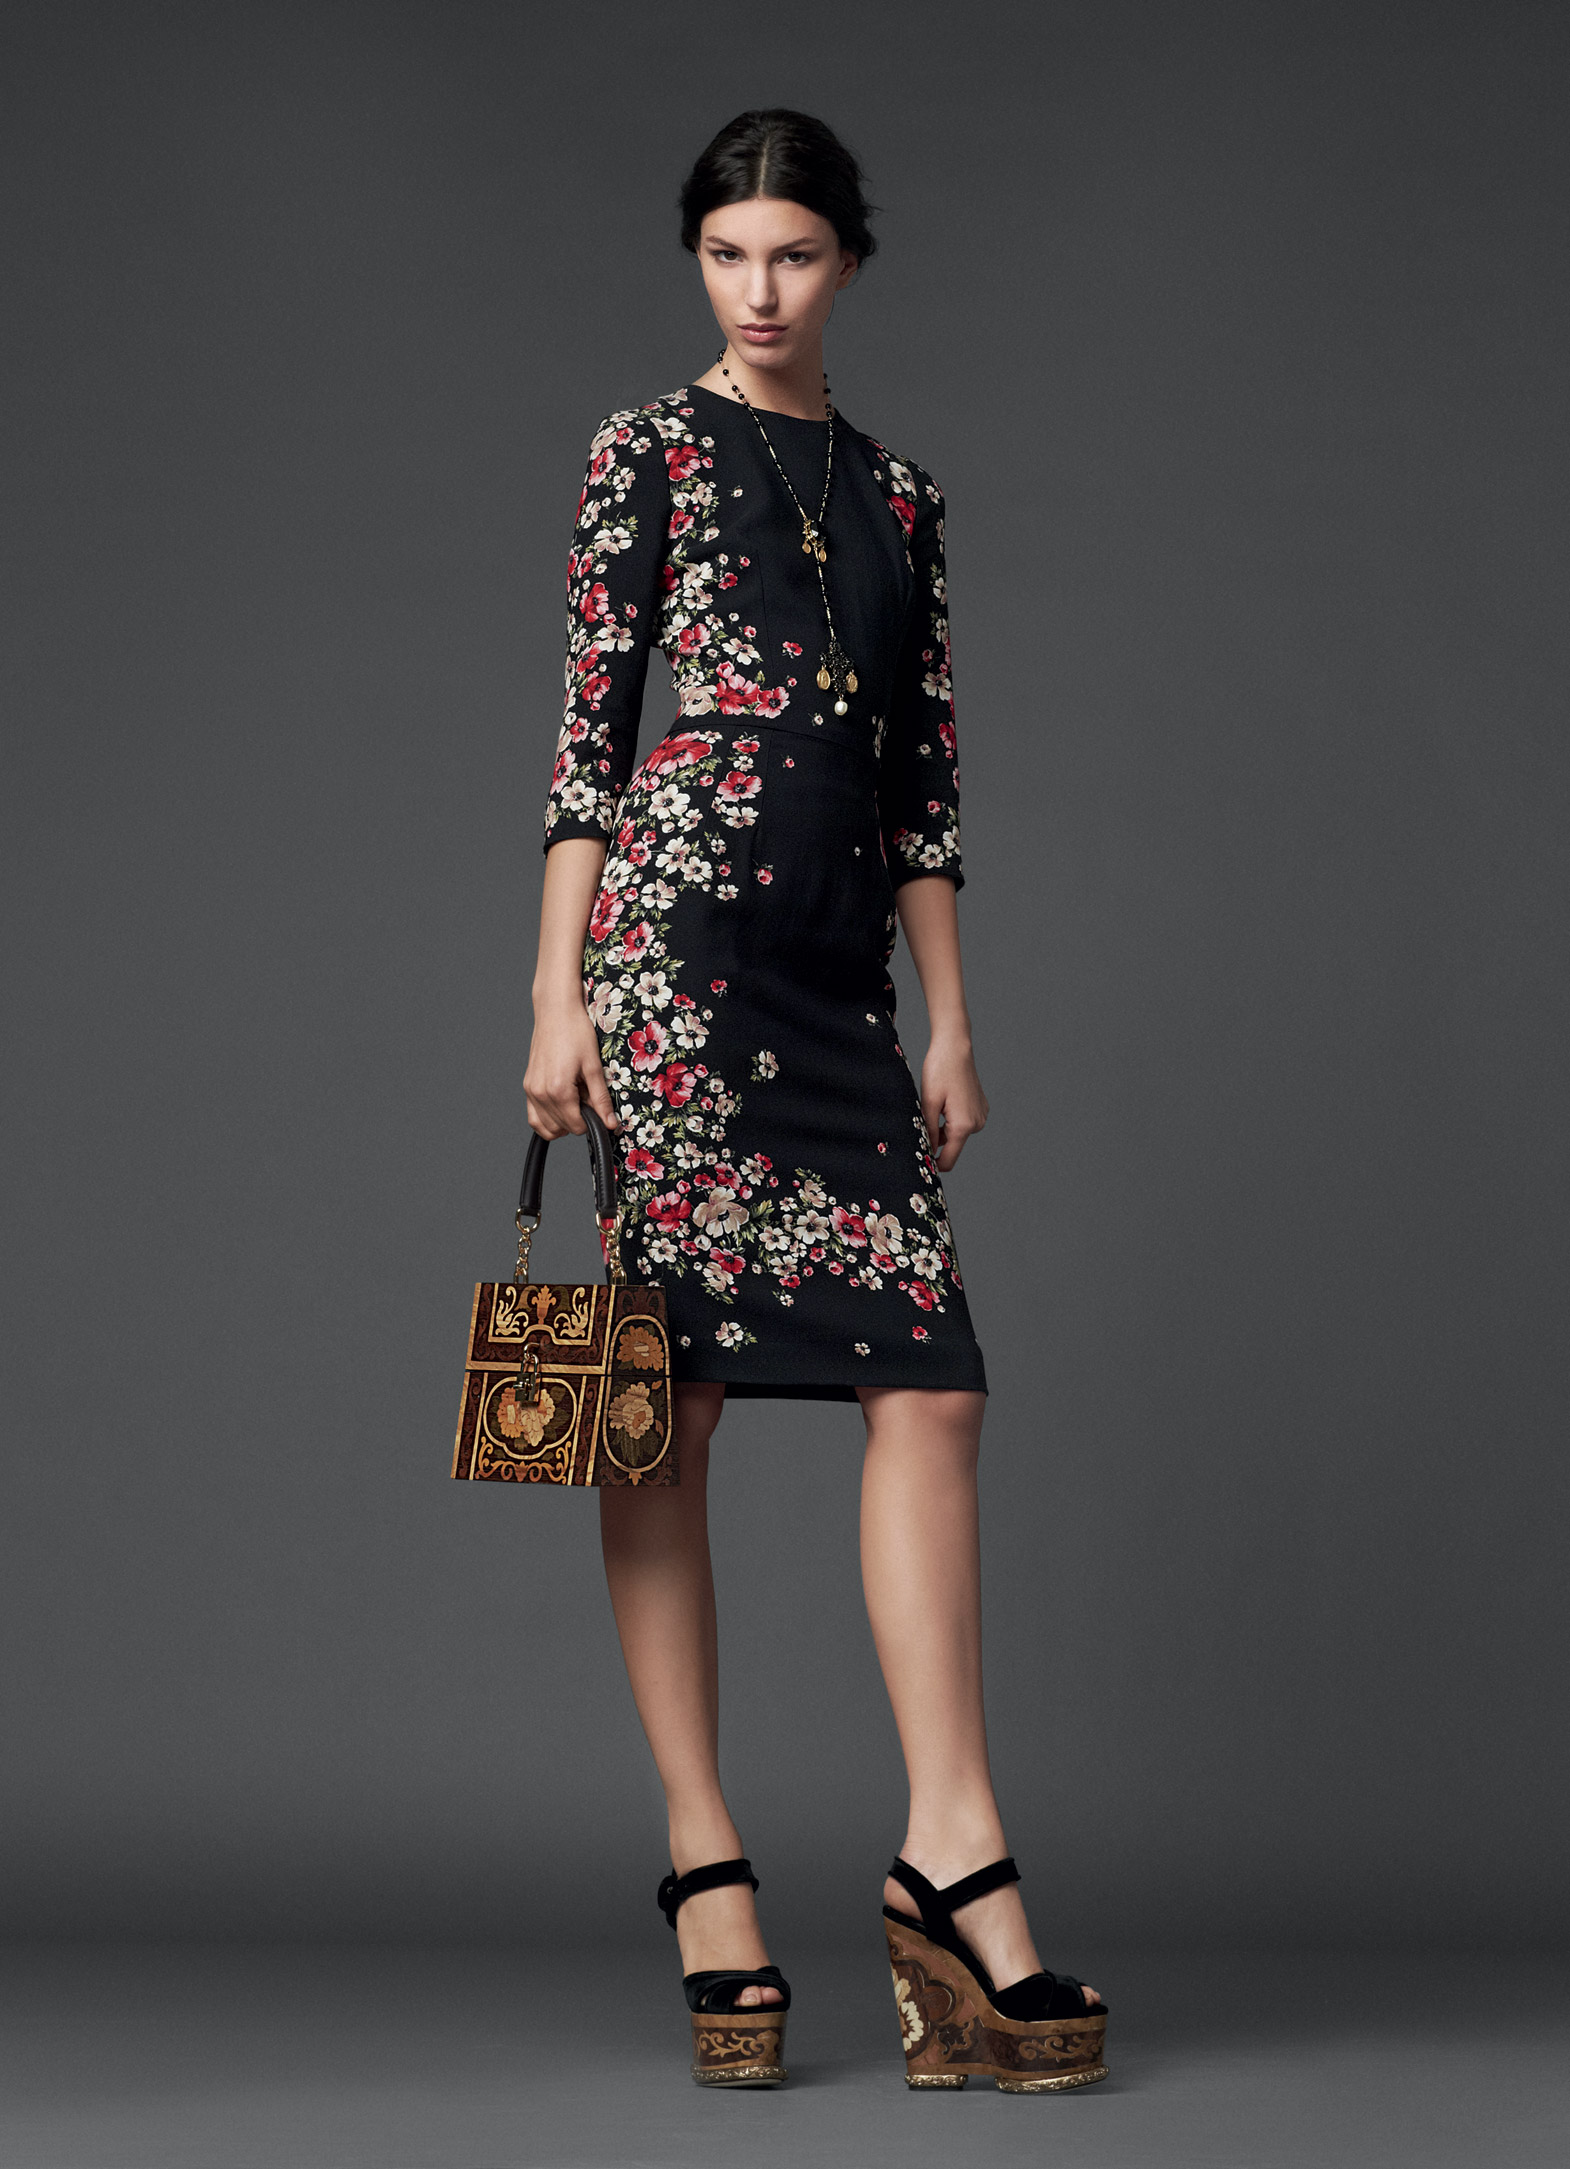 Dolce & Gabbana « Isioma's Style Report